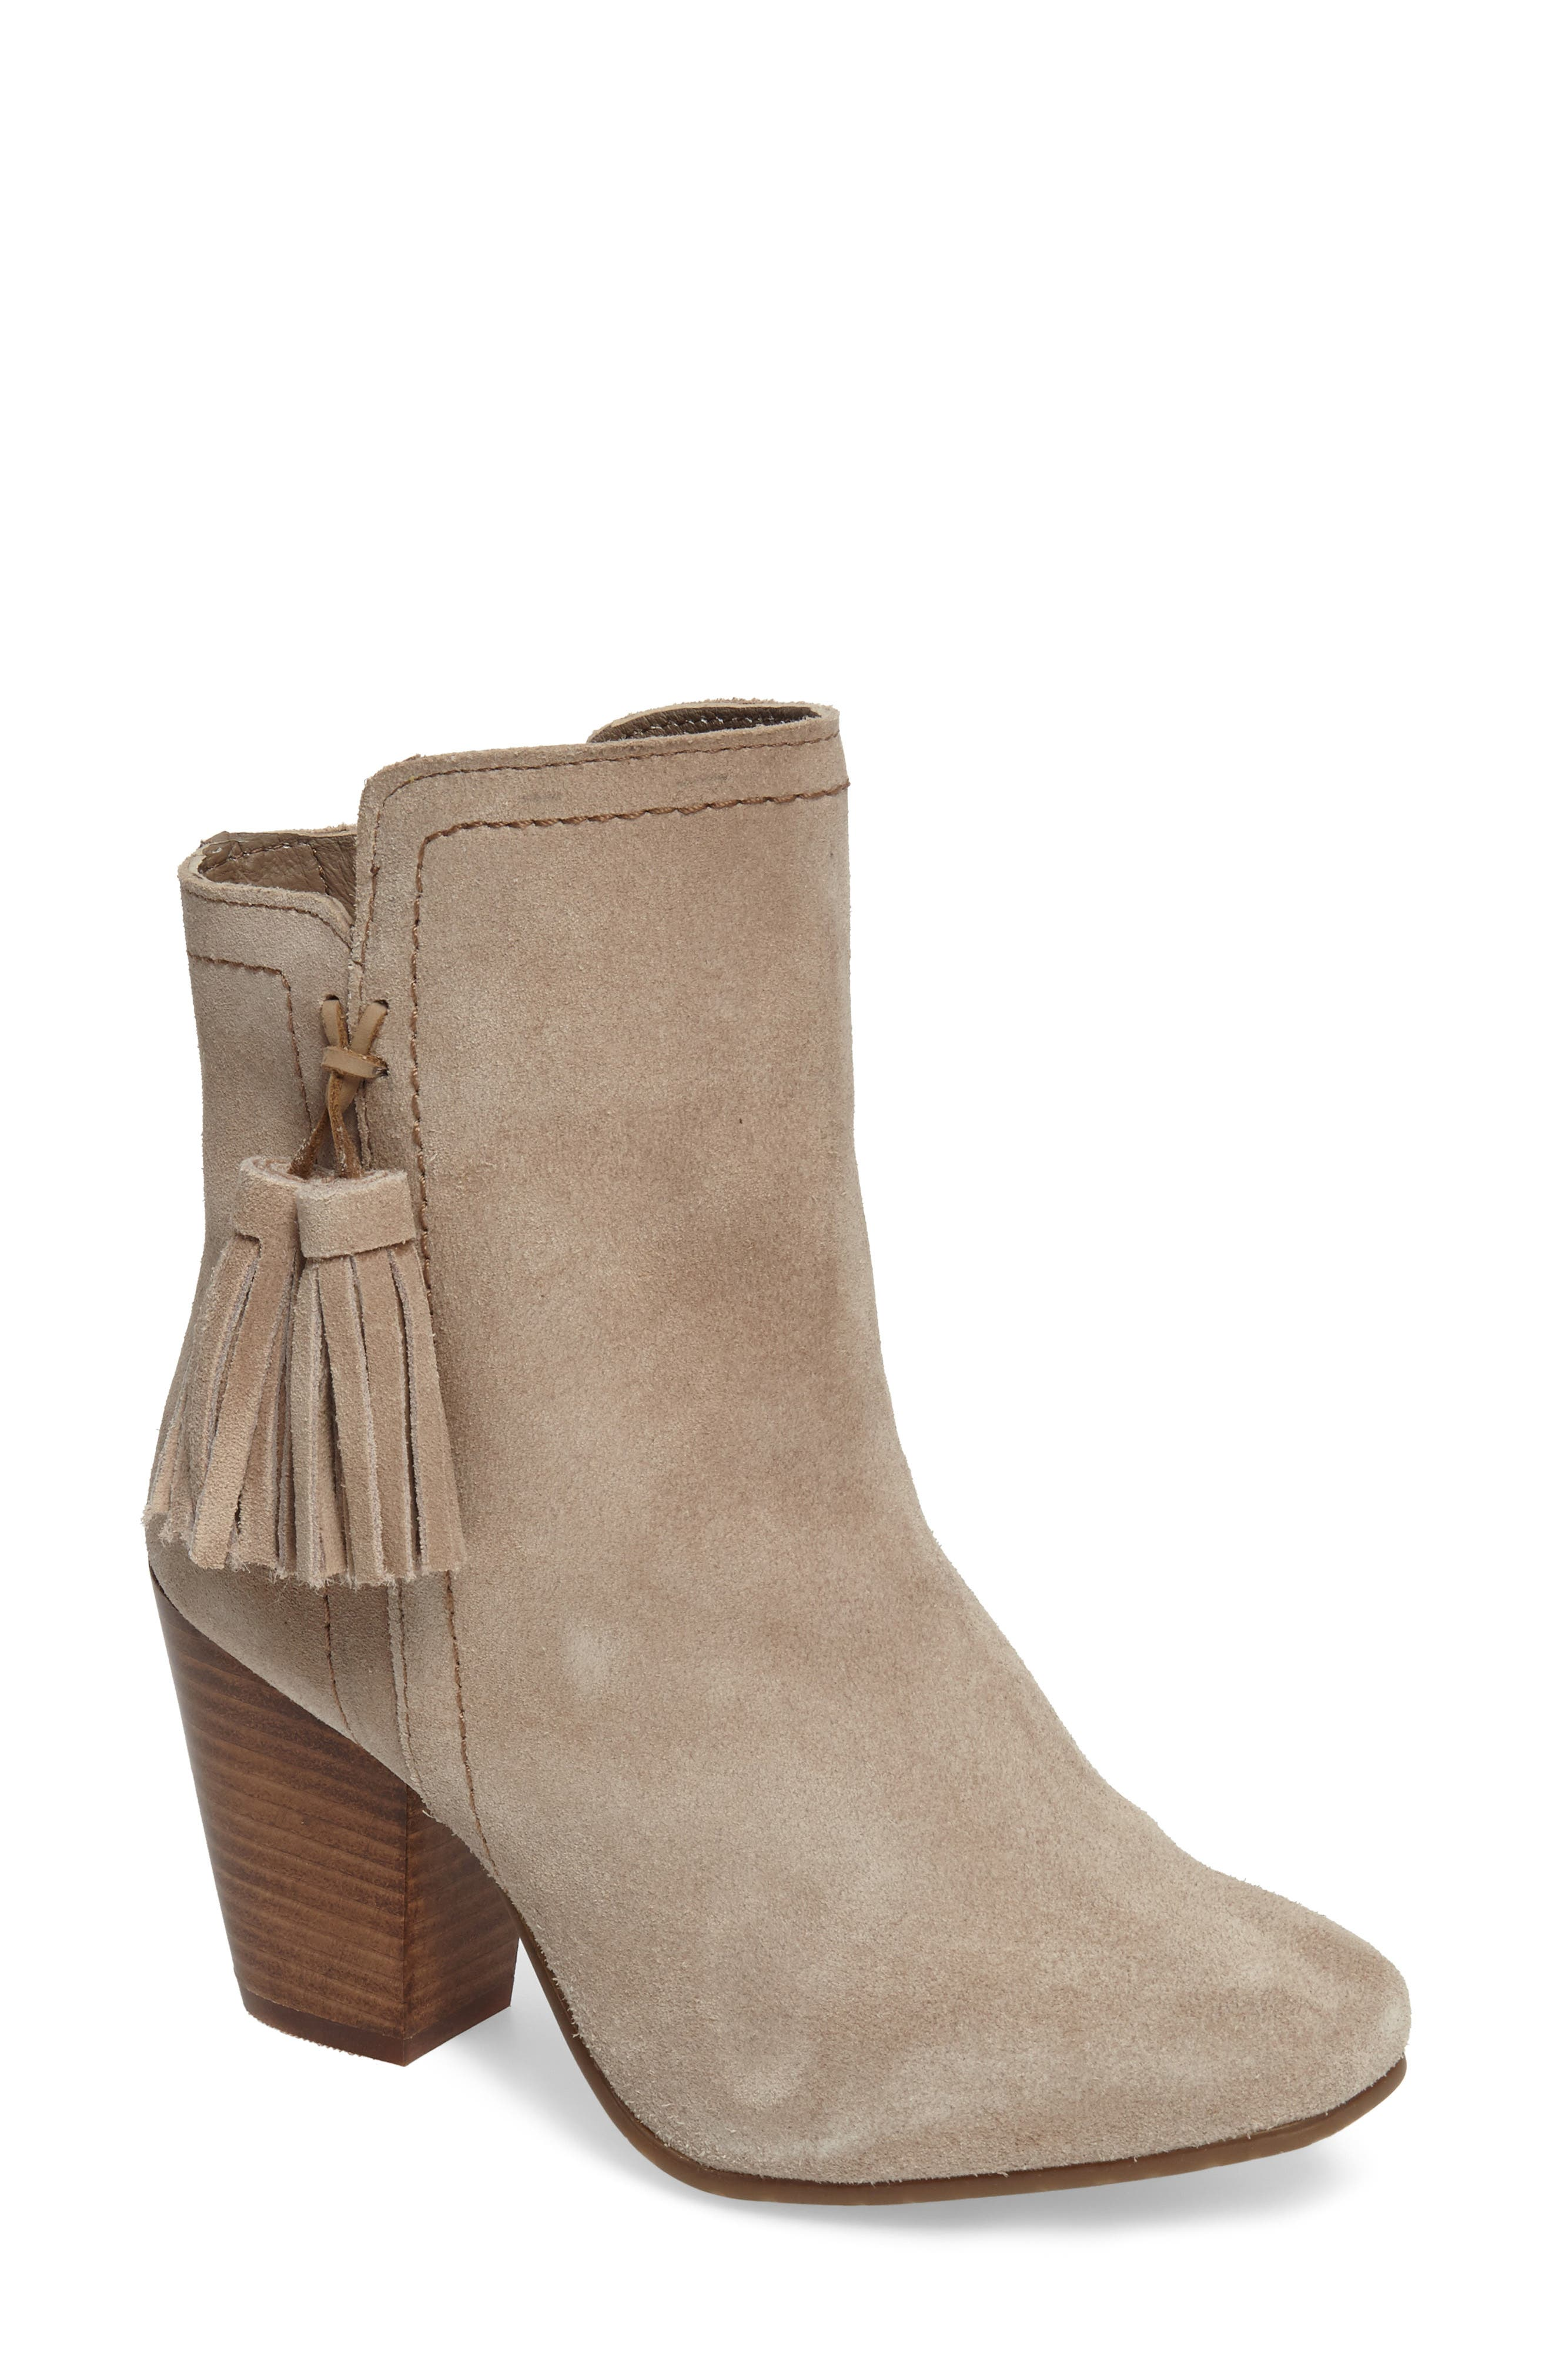 Daisee Billie Bootie,                         Main,                         color, Taupe Suede